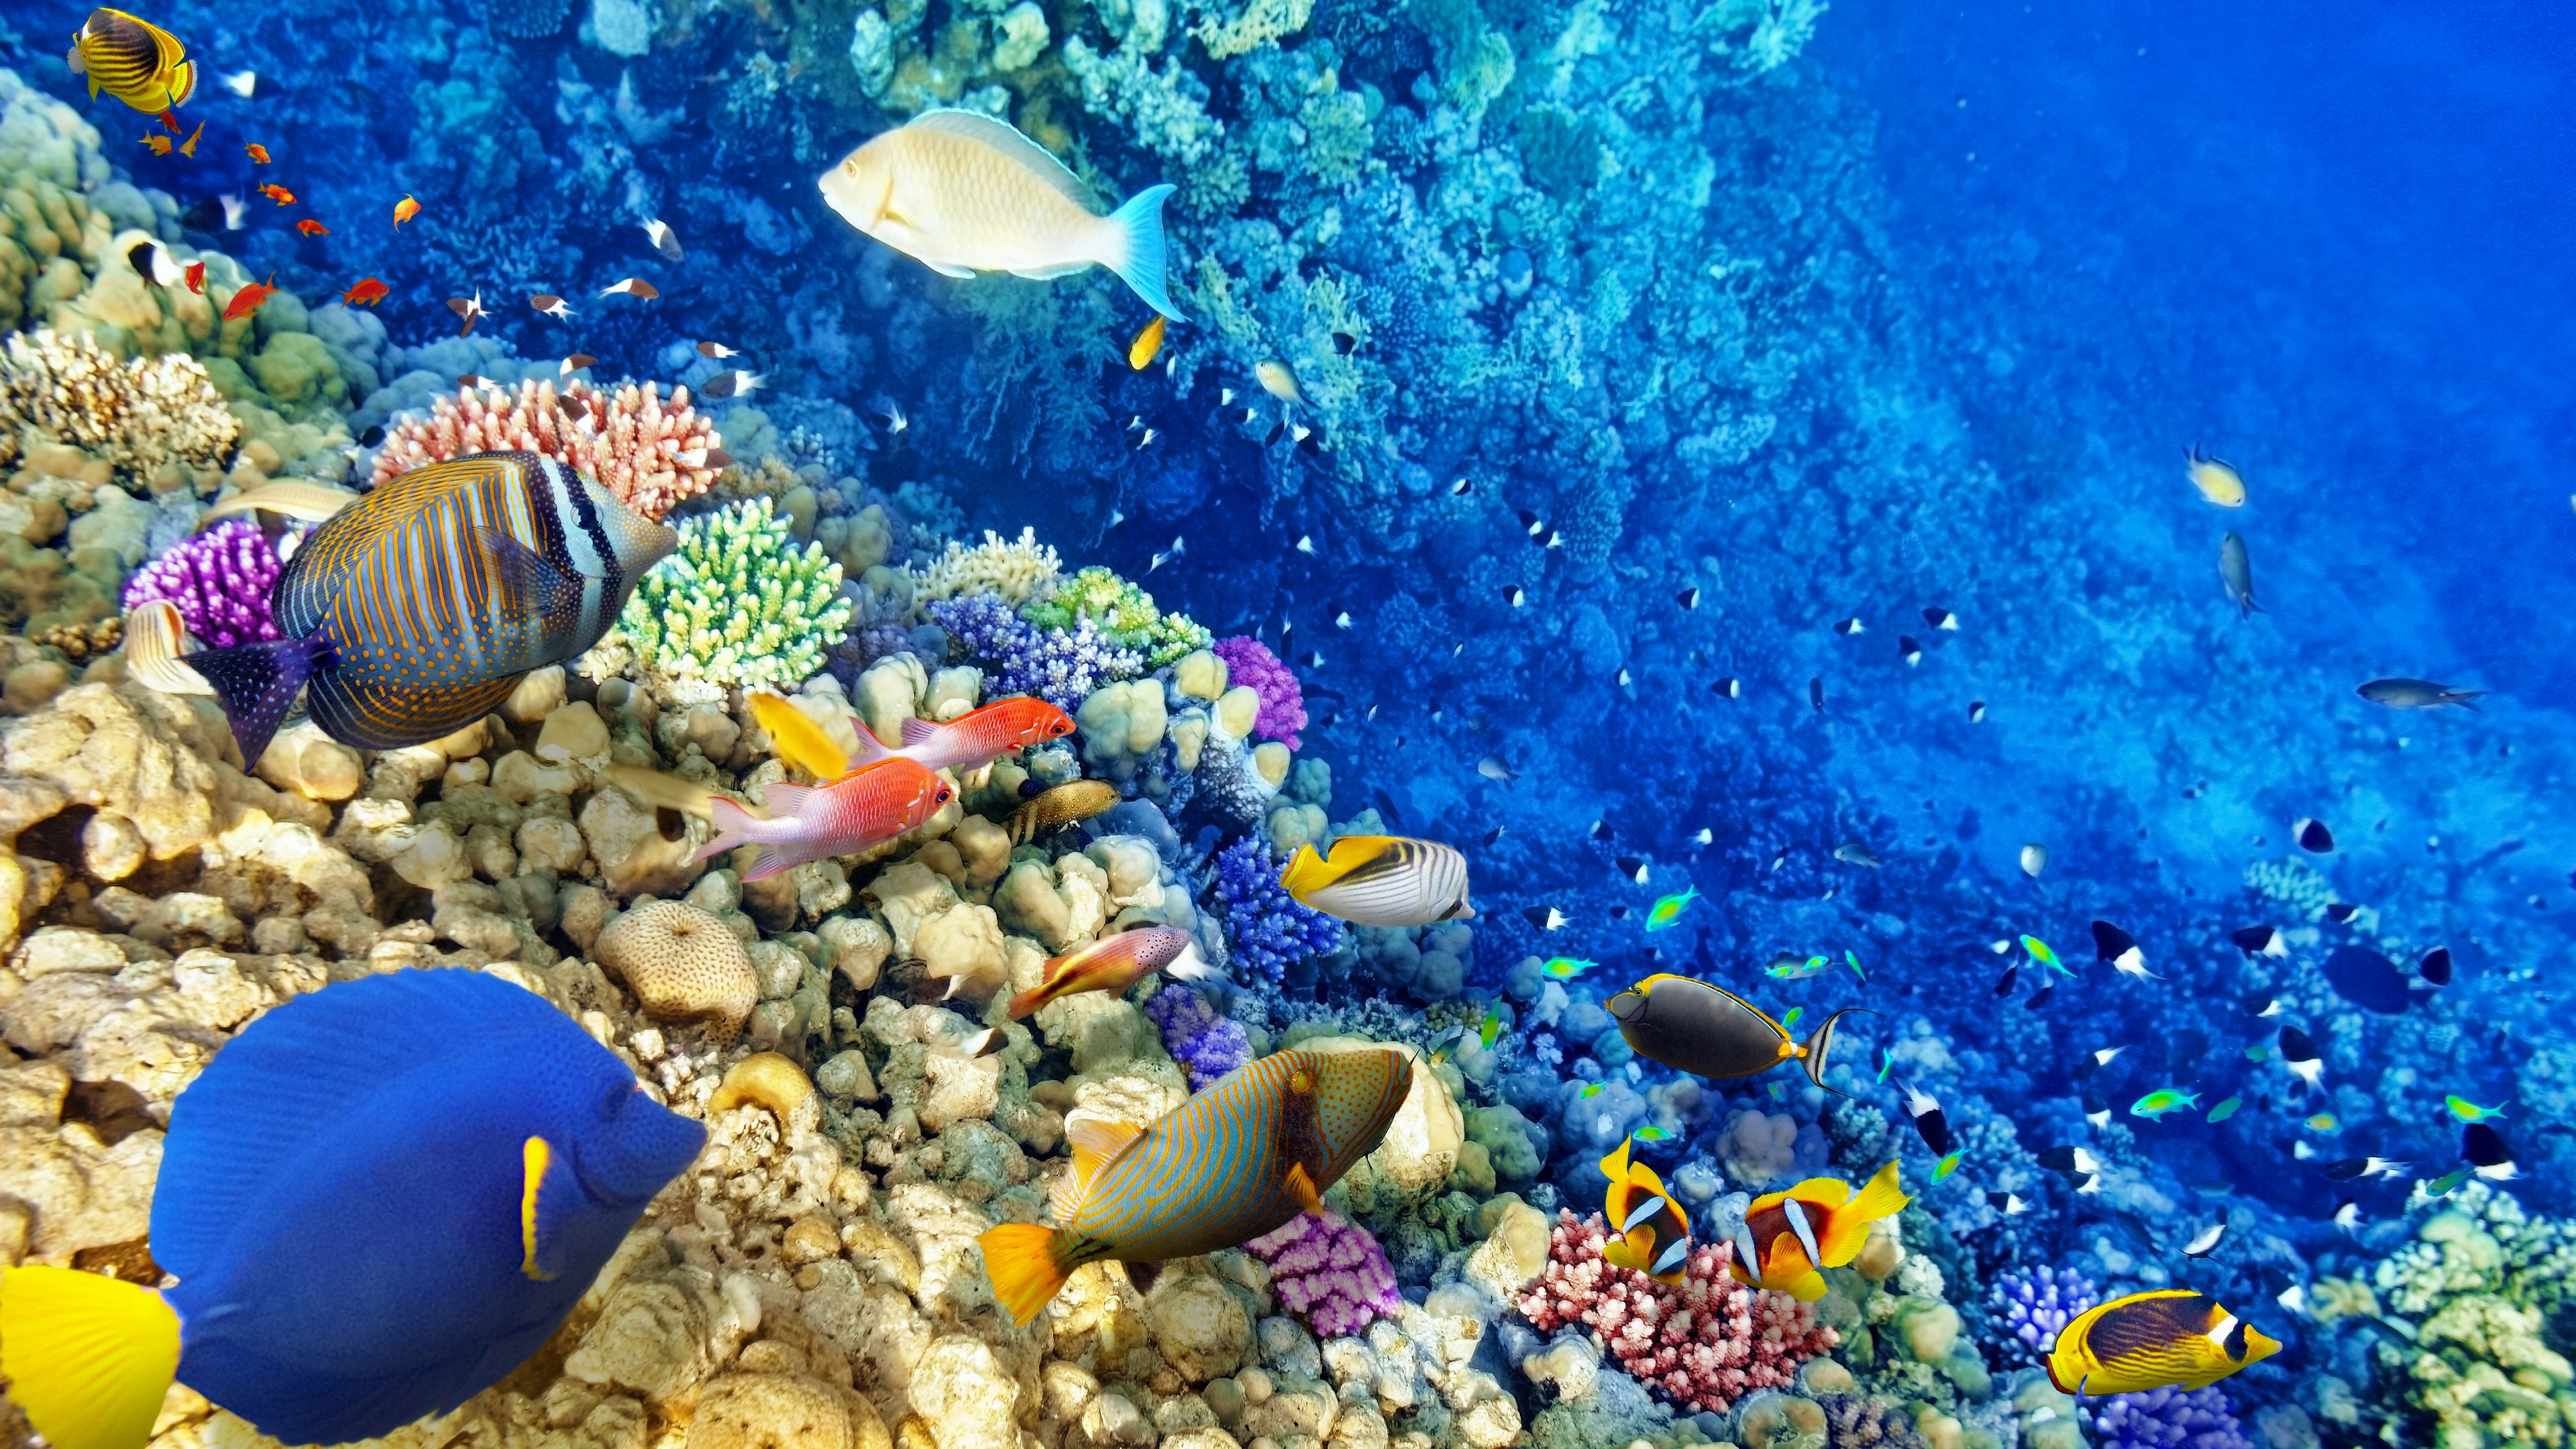 Underwater Reef Wallpaper Hd | www.pixshark.com - Images ...